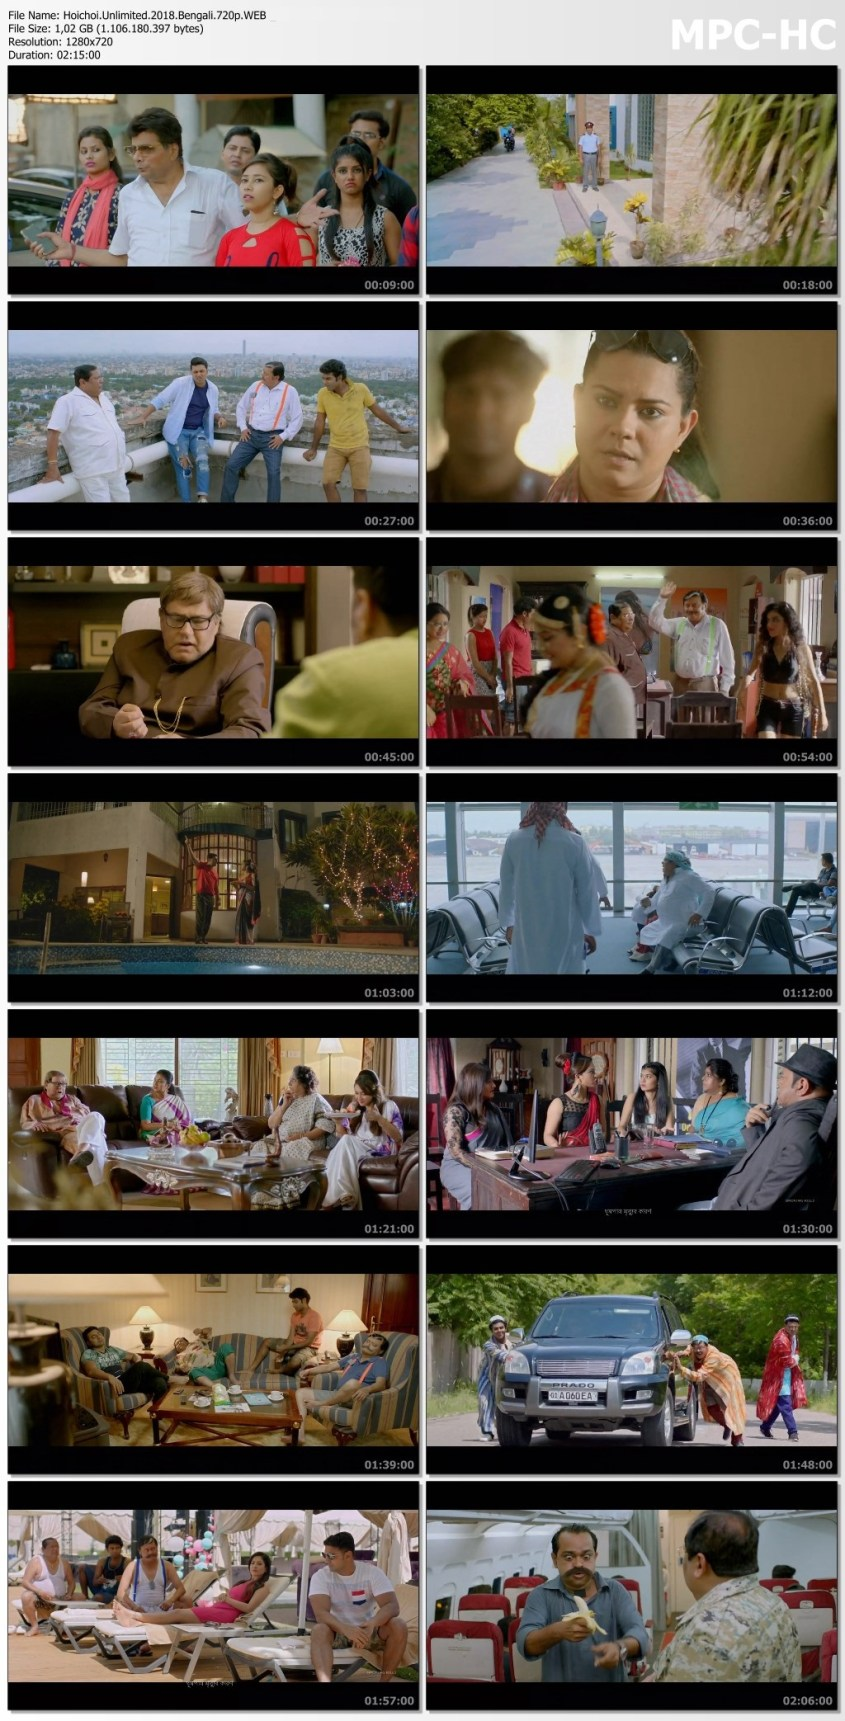 Hoichoi-Unlimited-2018-Bengali-720p-WEB-DL-AAC-mkv-thumbs